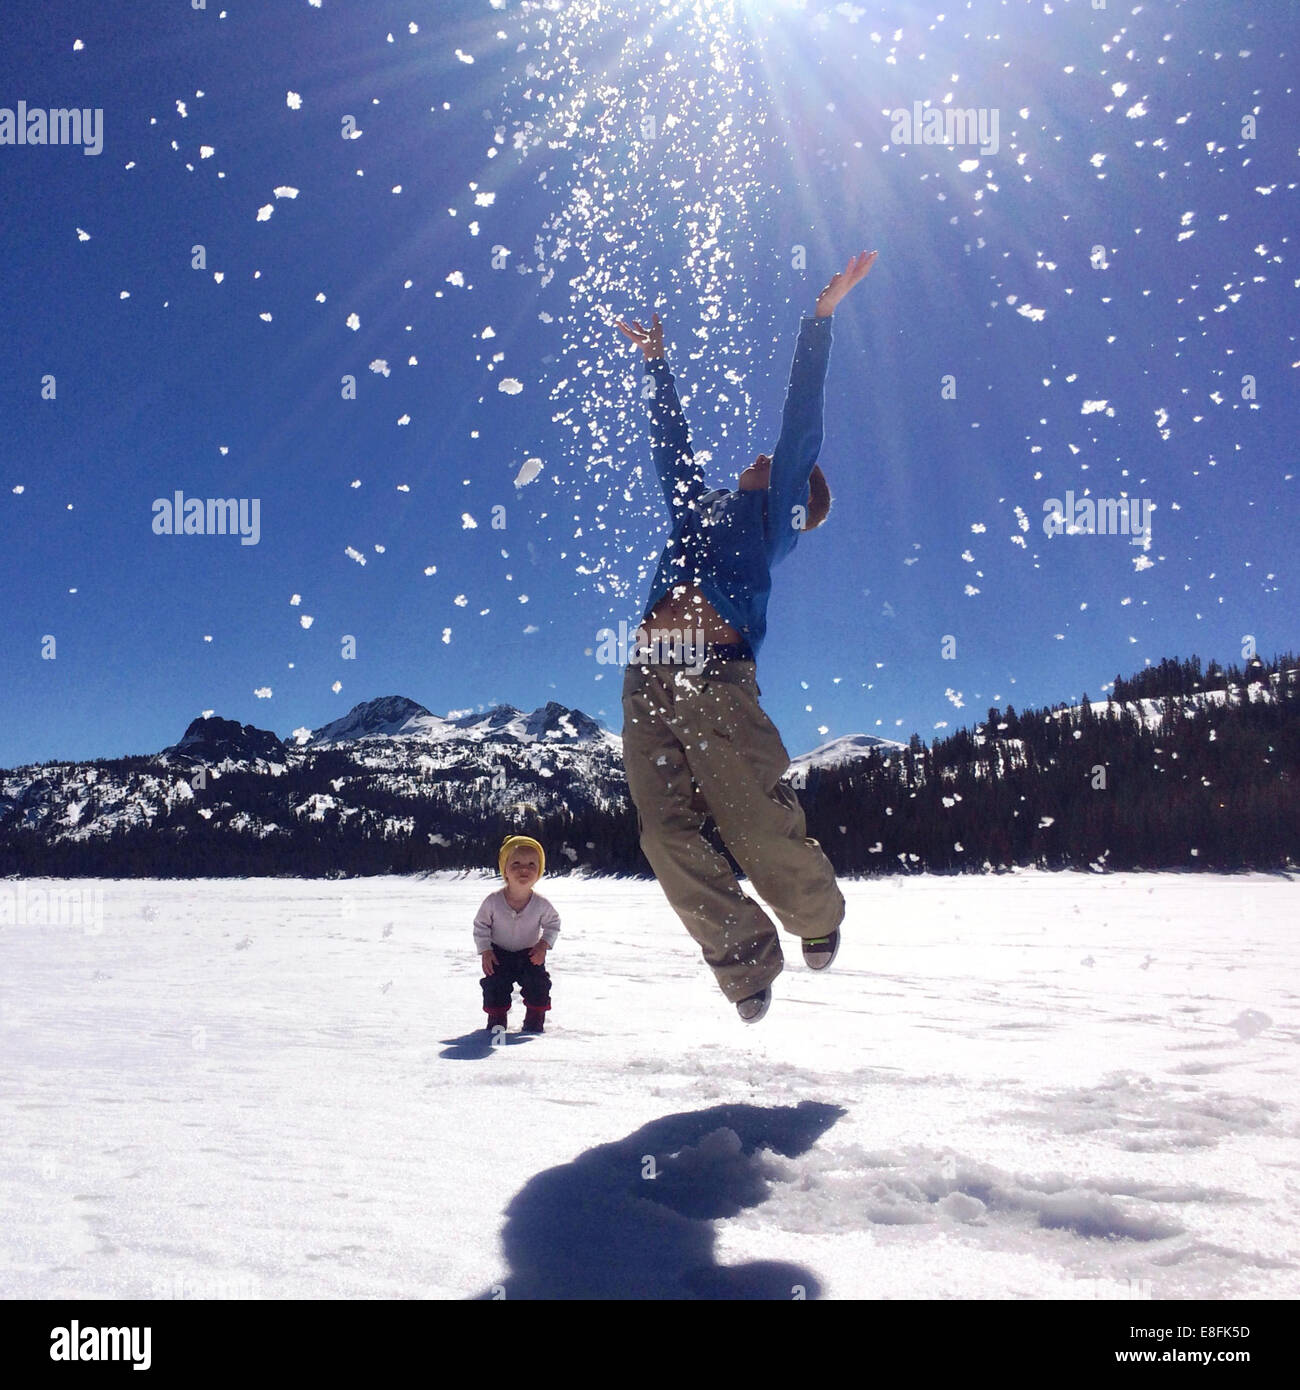 Two boys playing in the snow, Lake Tahoe, California, America, USA - Stock Image